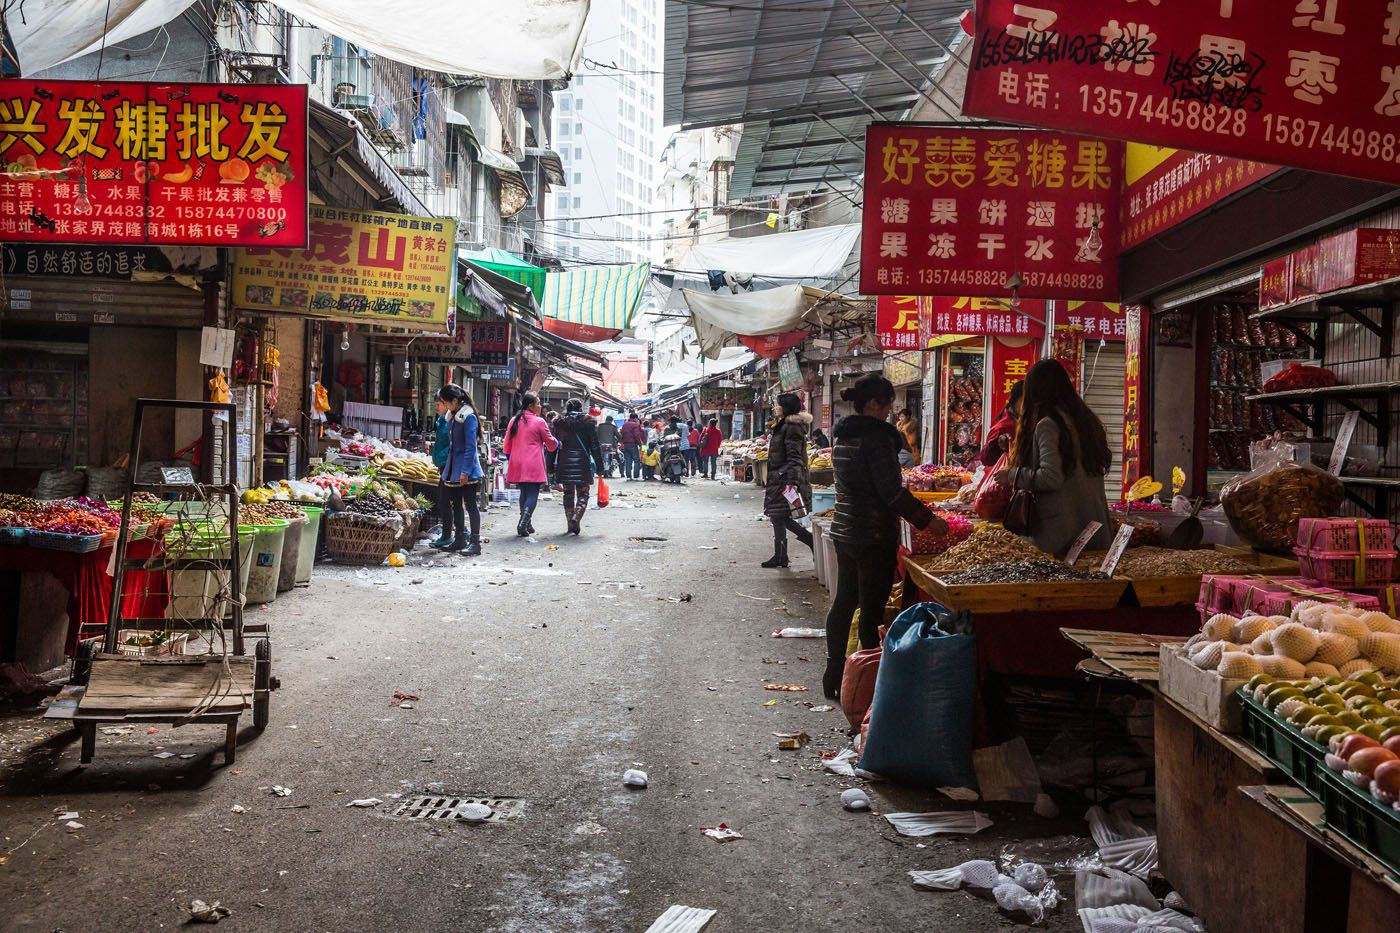 Market in China